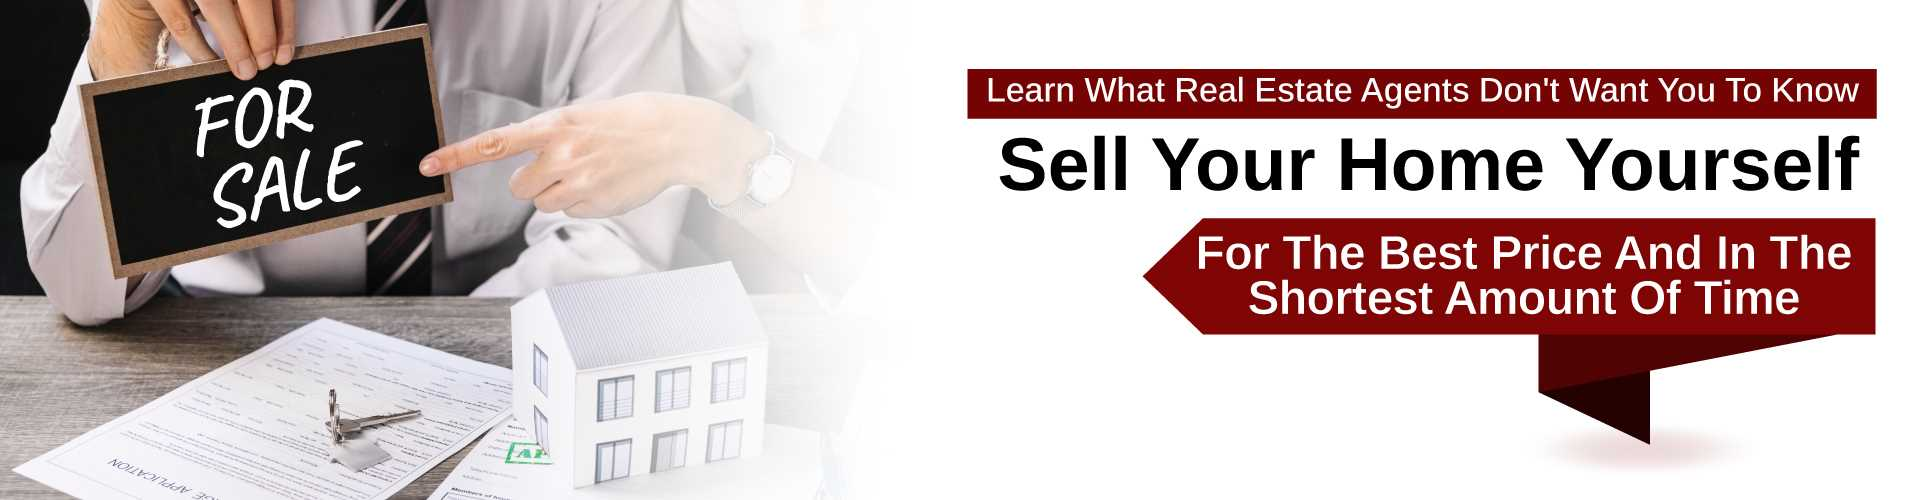 How to Sell Your Home Without an Agent Image